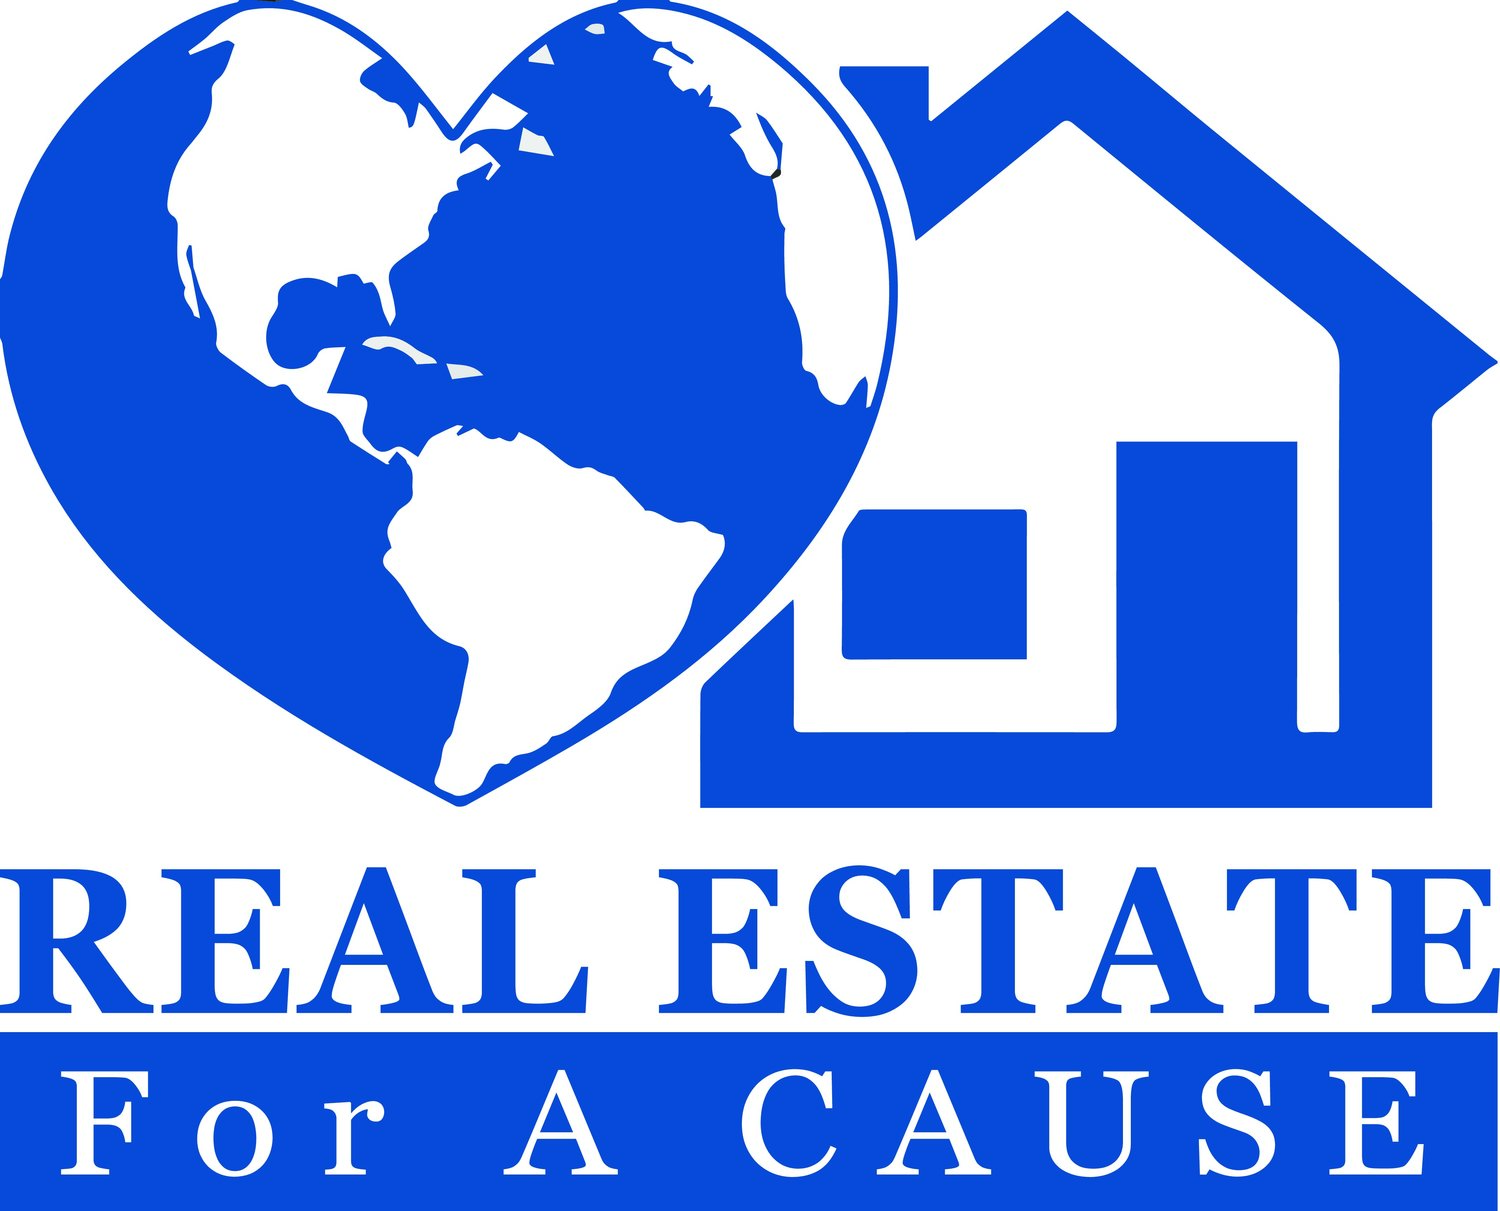 Real Estate for a CAUSE